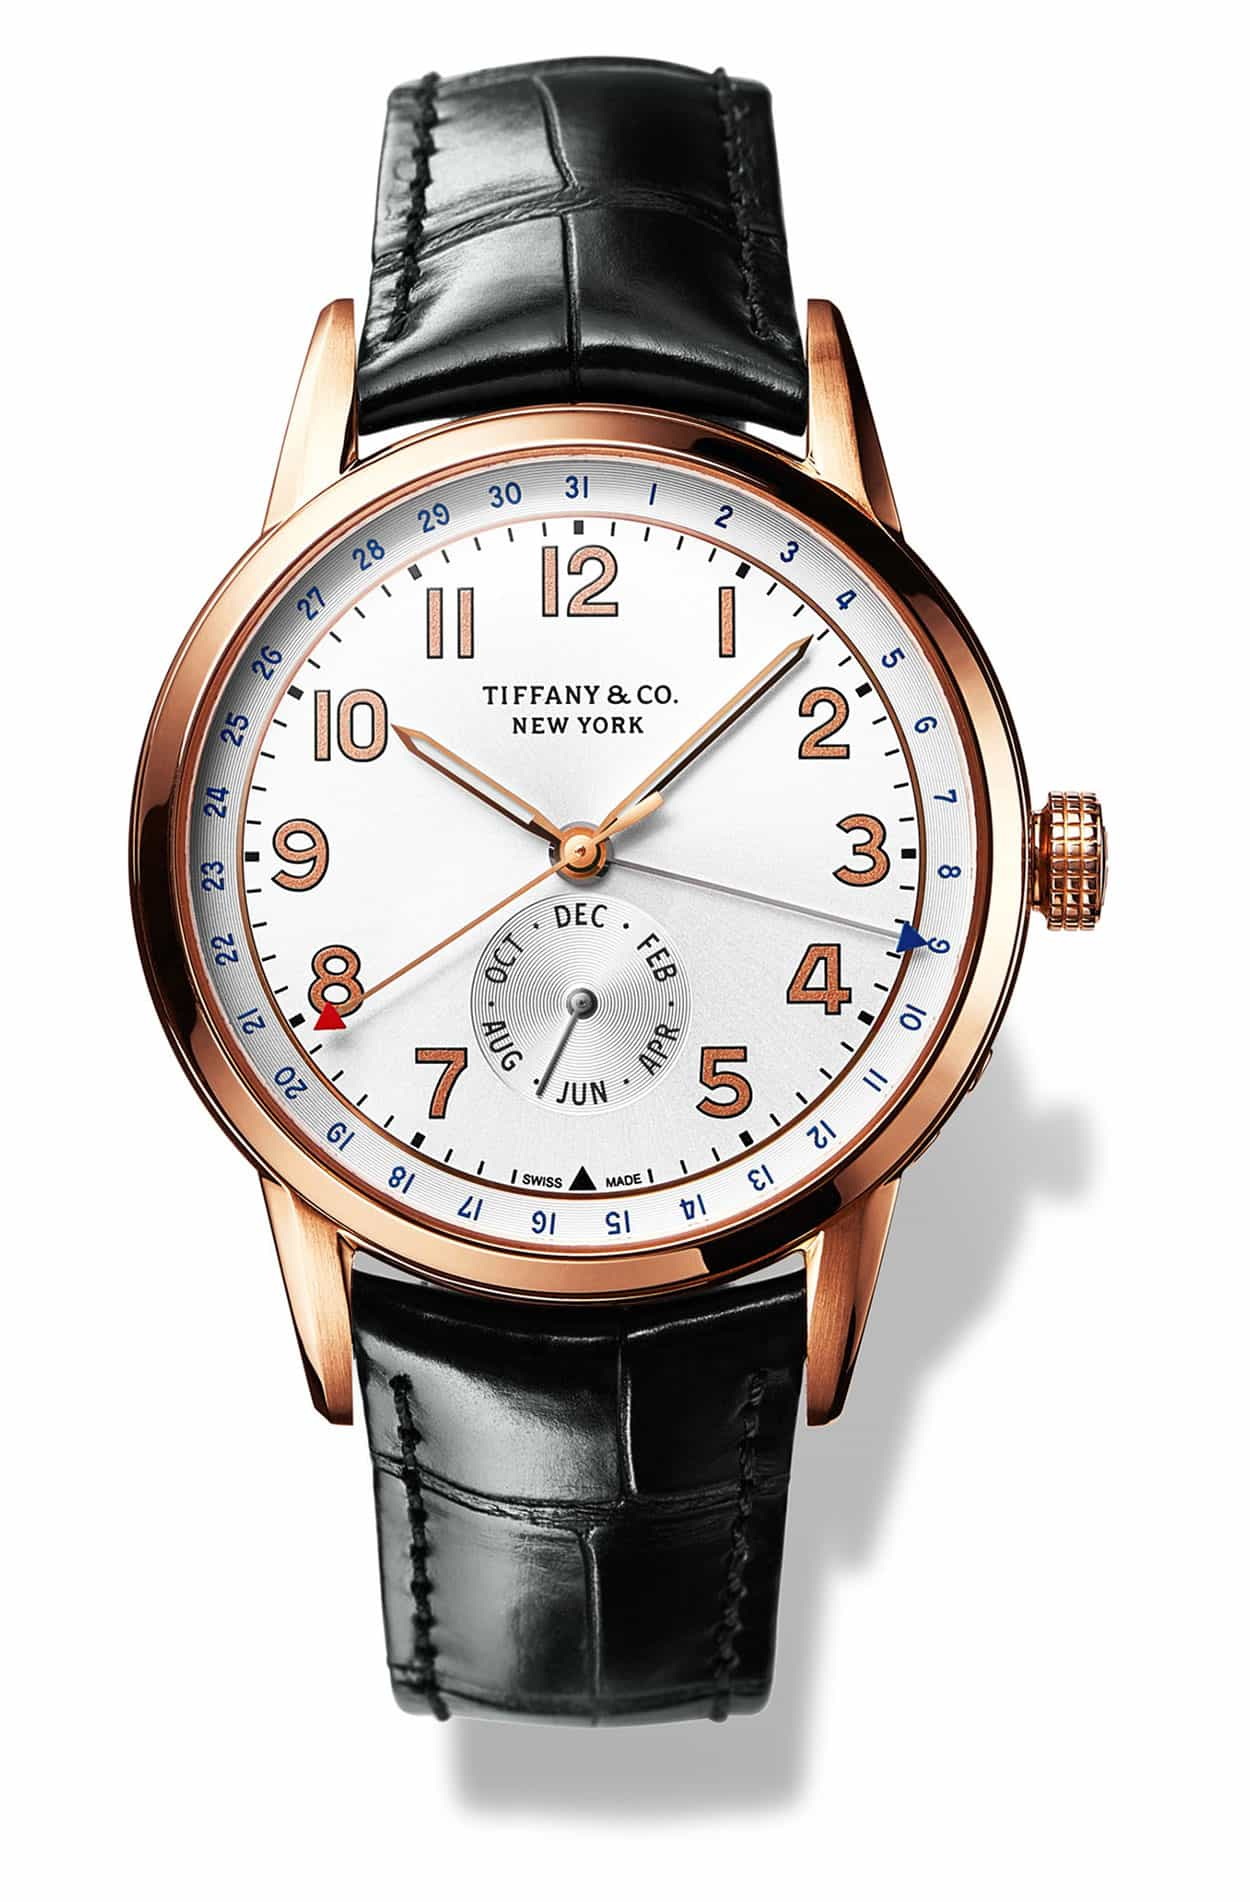 Tiffany CT60 Calendar watch, inspired on the FDR timepiece